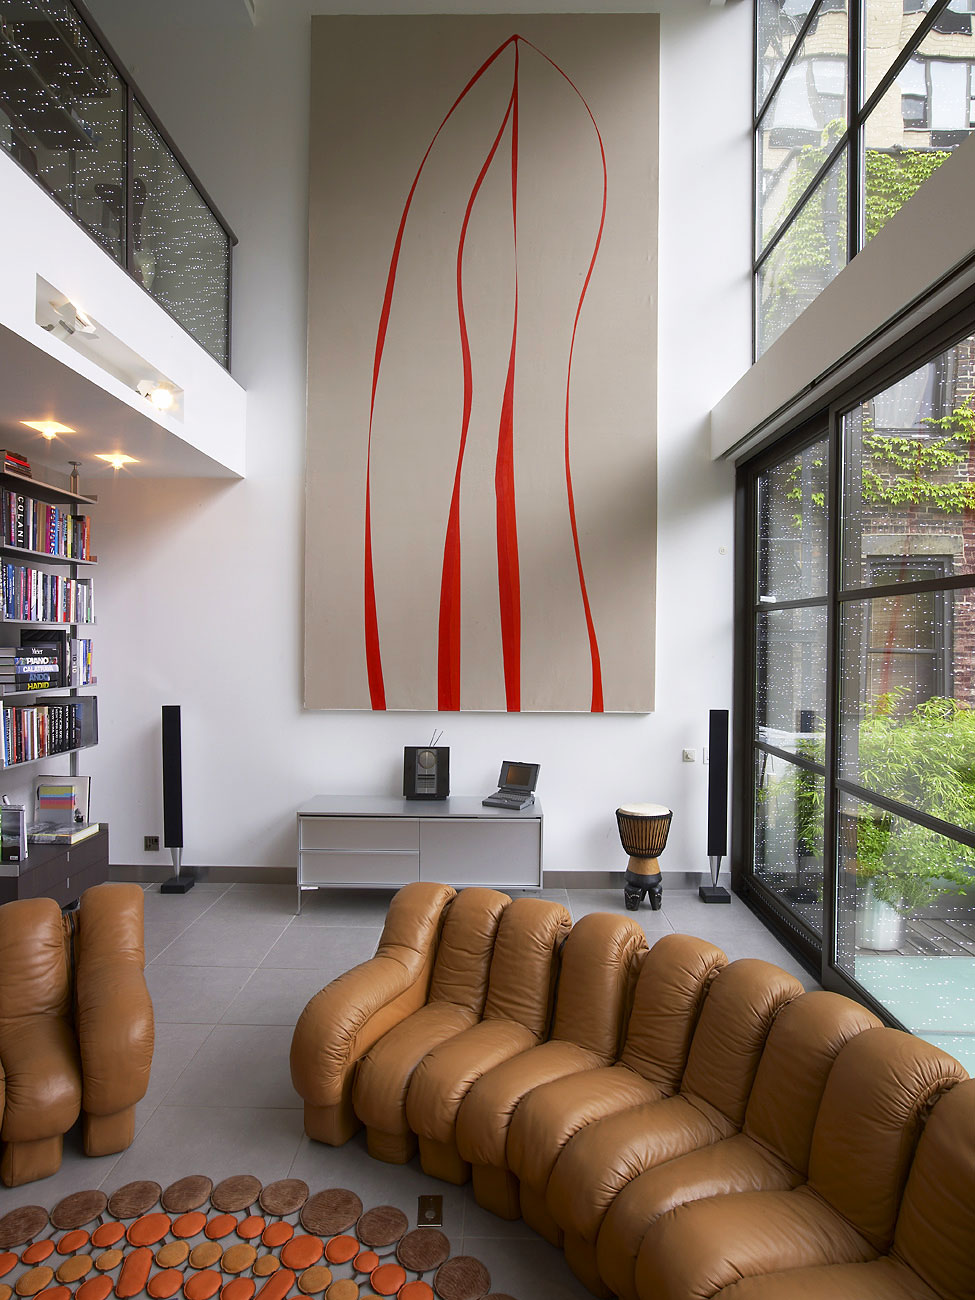 Gramercy Park Townhouse by Fractal Construction (13)